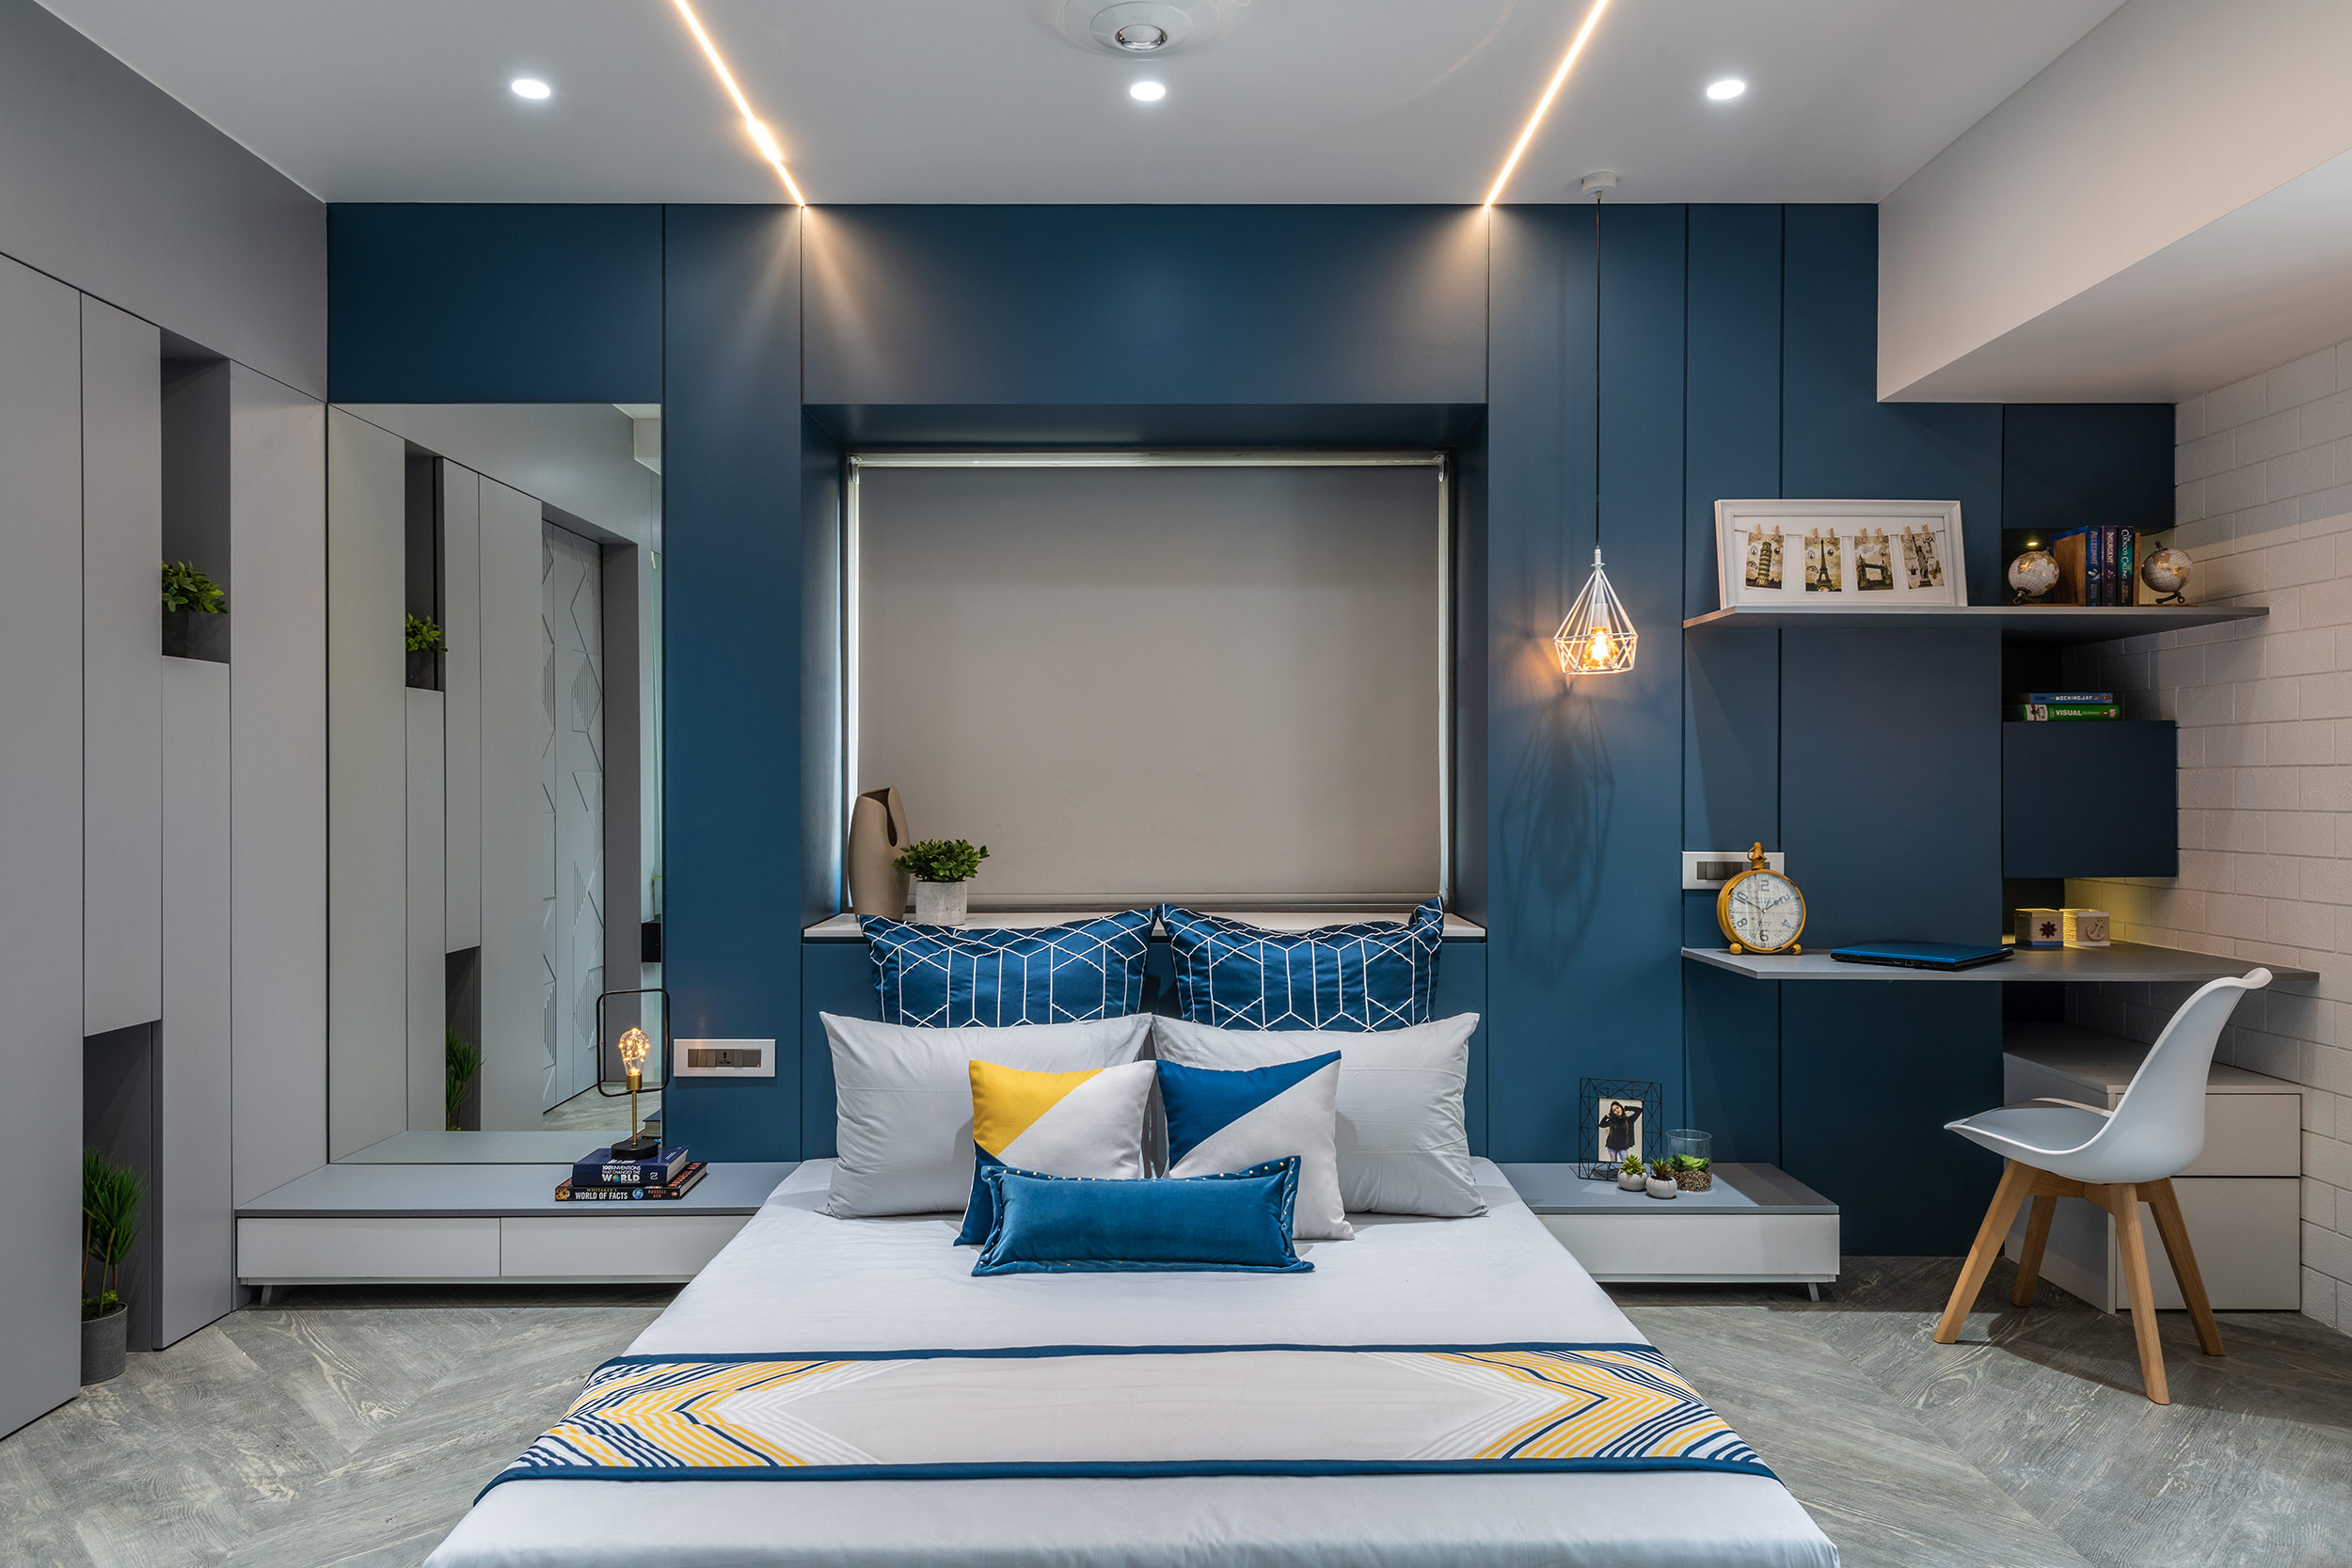 7 comfortable bedroom design and furniture ideas for a ... on Room Decor.  id=76859